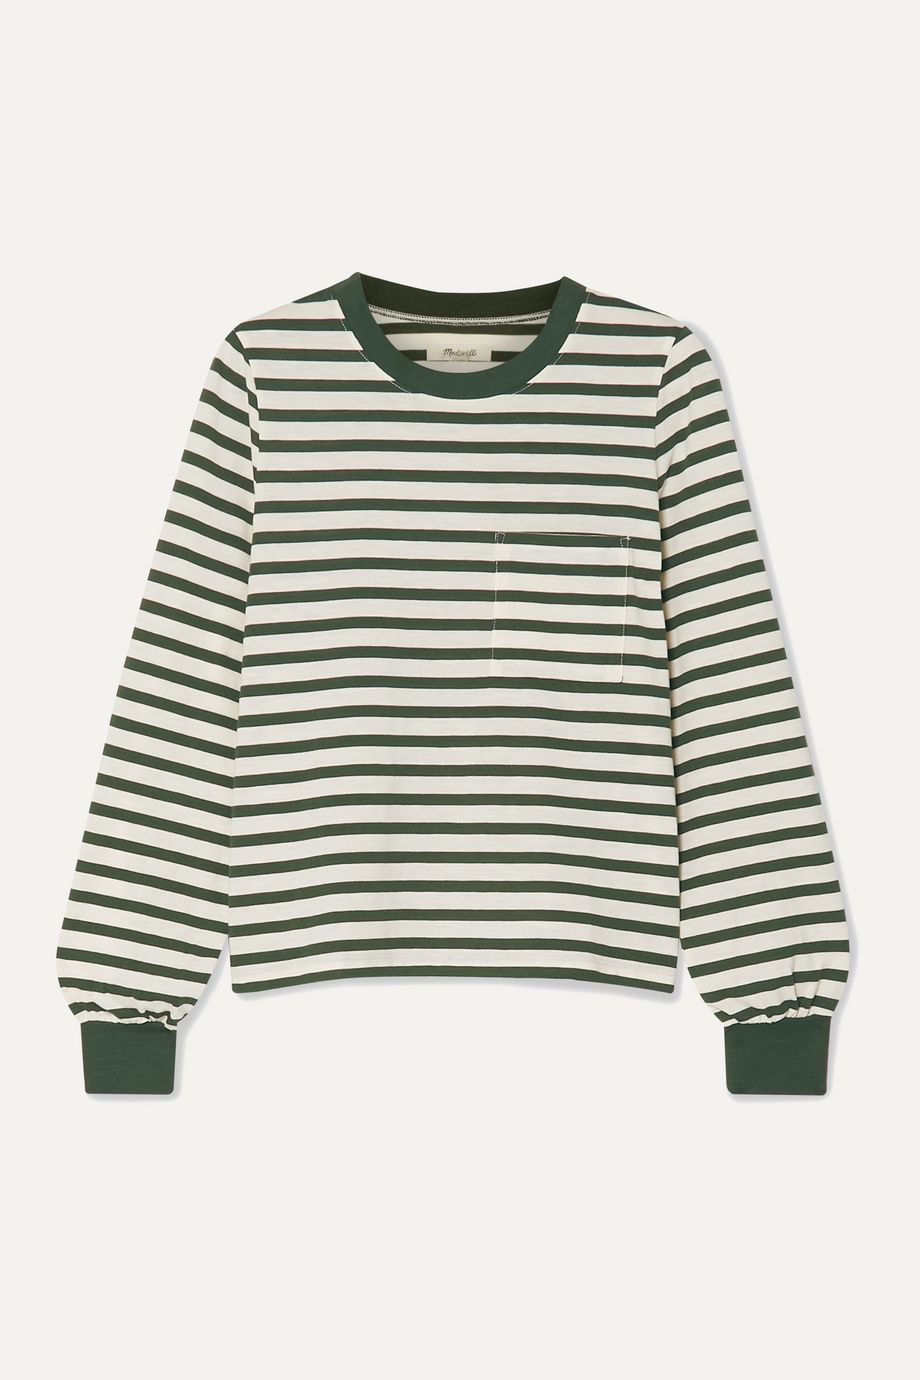 Madewell Caressa striped cotton-blend jersey top